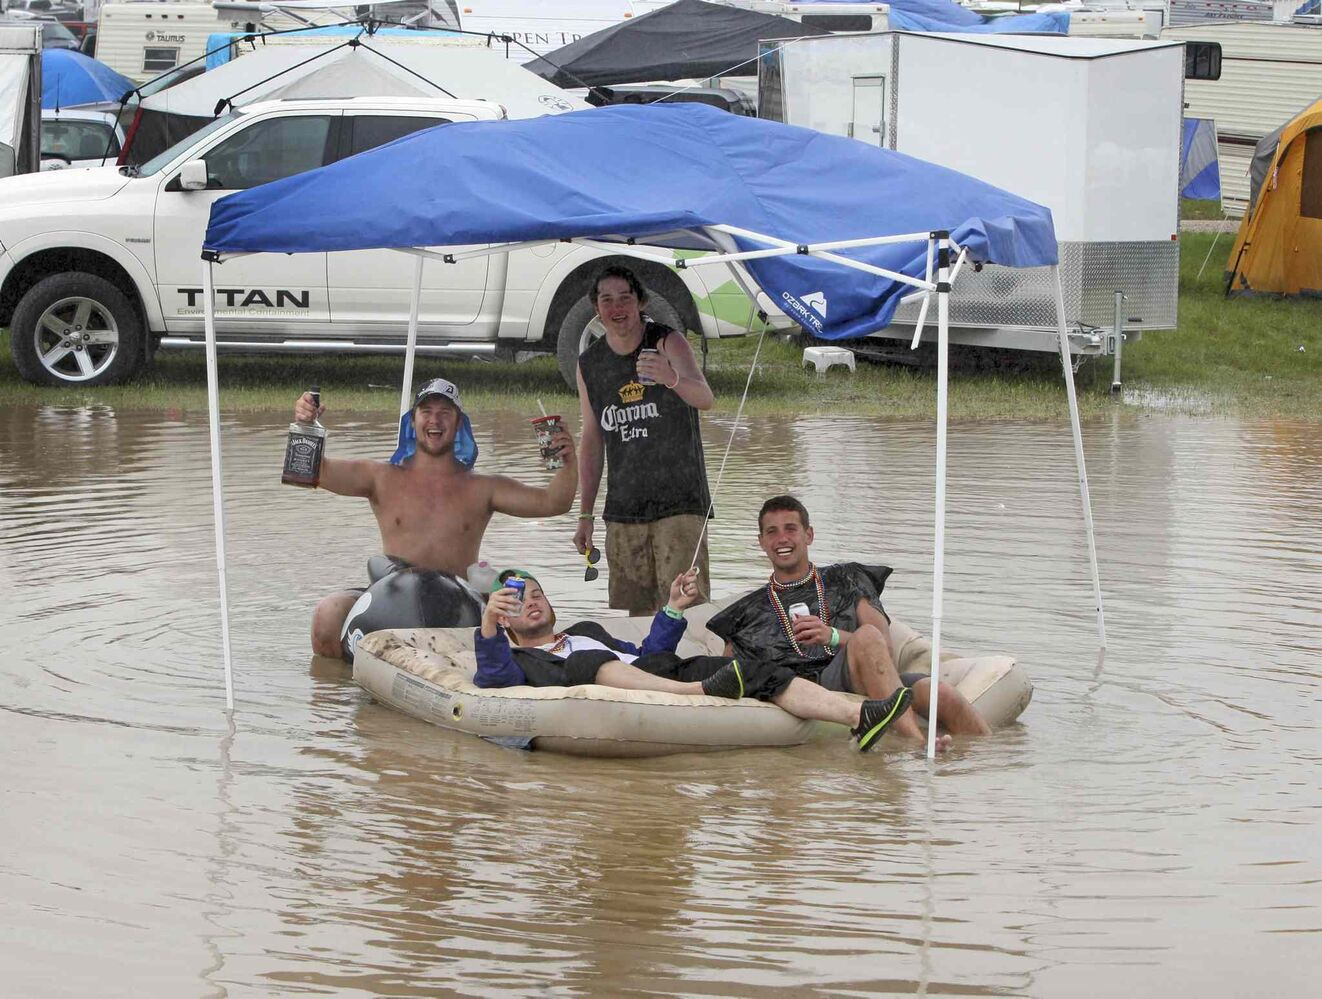 Rain blessed festival goers most of the weekend.